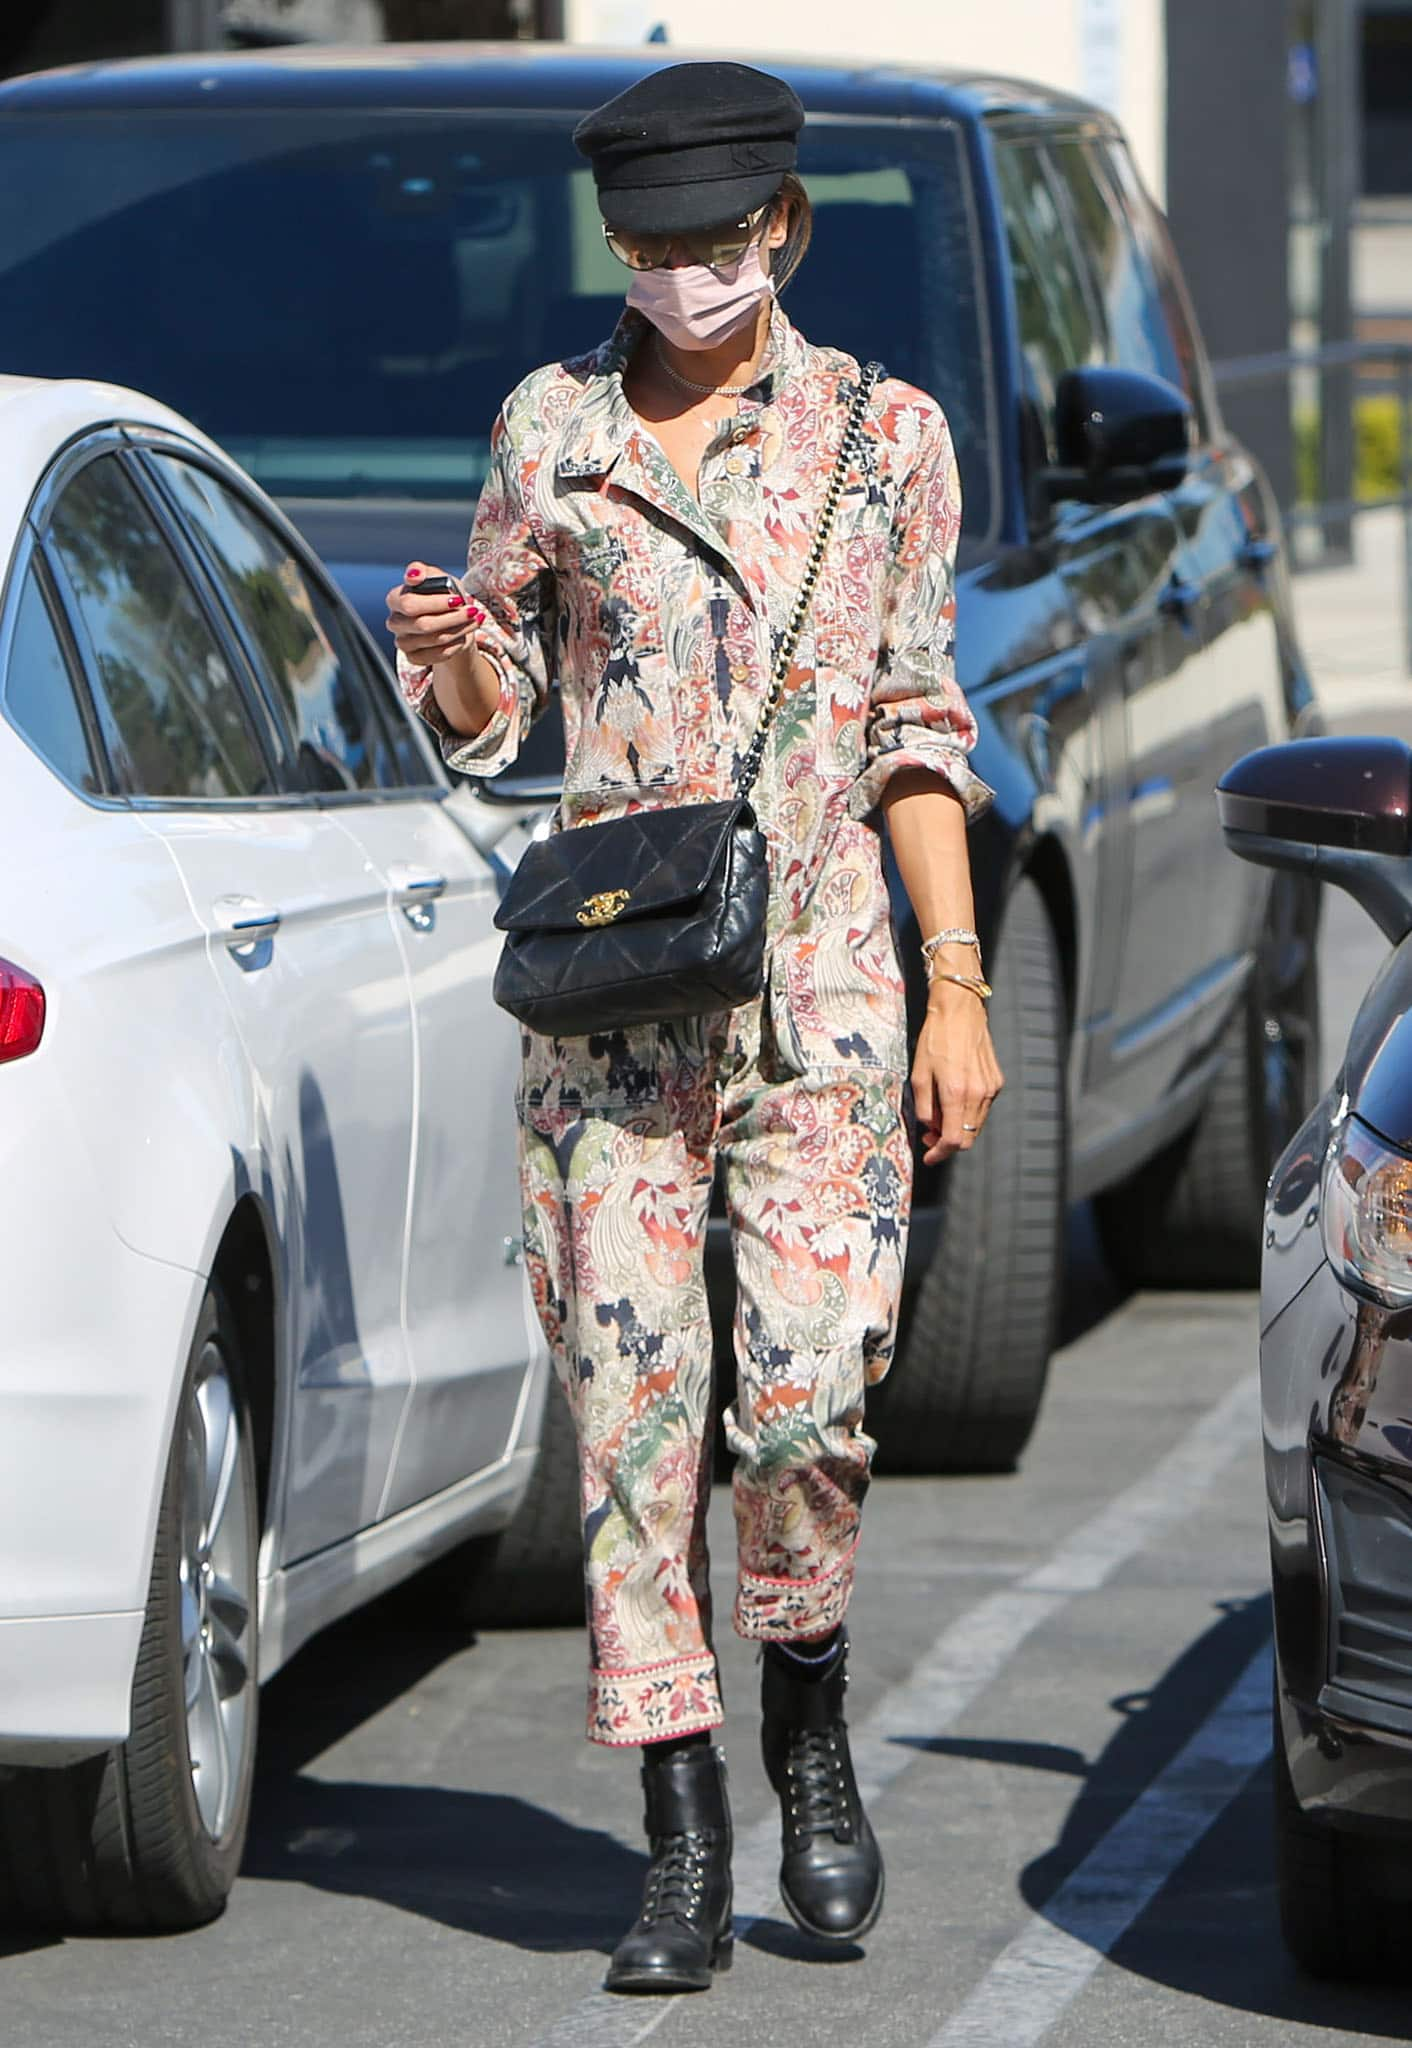 Alessandra Ambrosio in Chufy Yon jumpsuit while shopping in Los Angeles on March 1, 2021